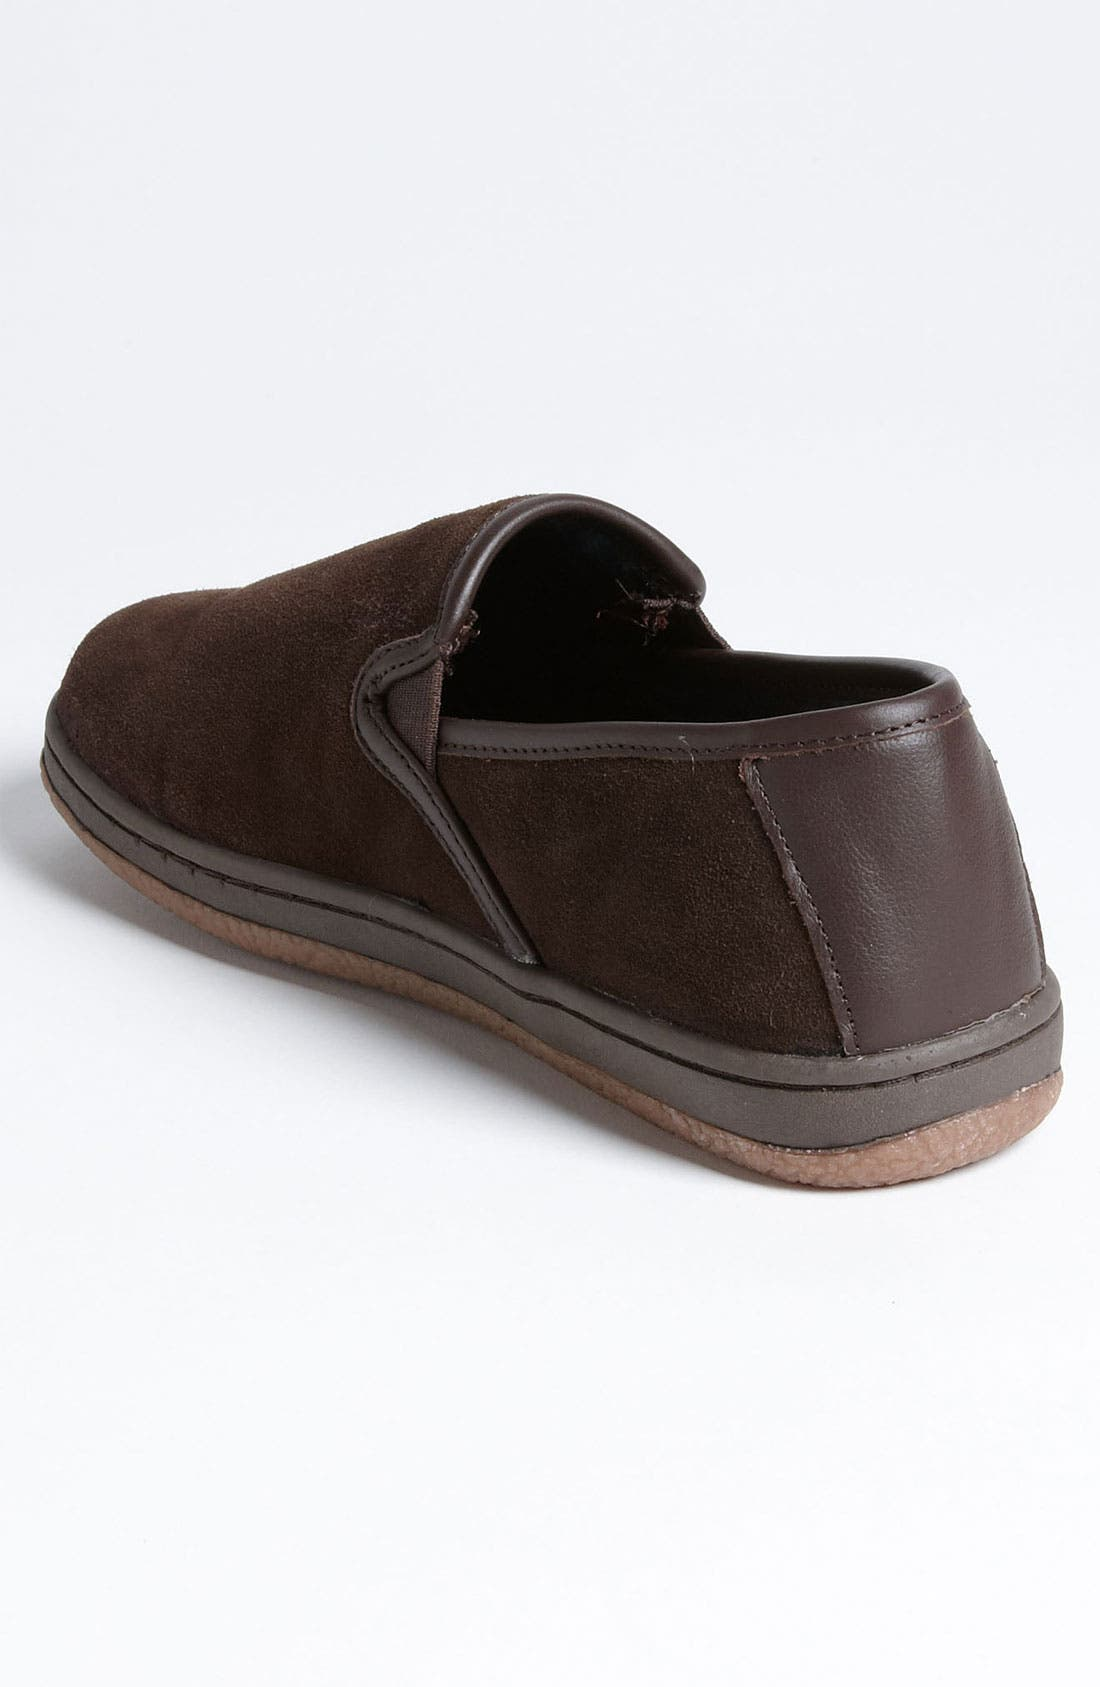 Alternate Image 2  - L.B. Evans 'Reese' Slipper